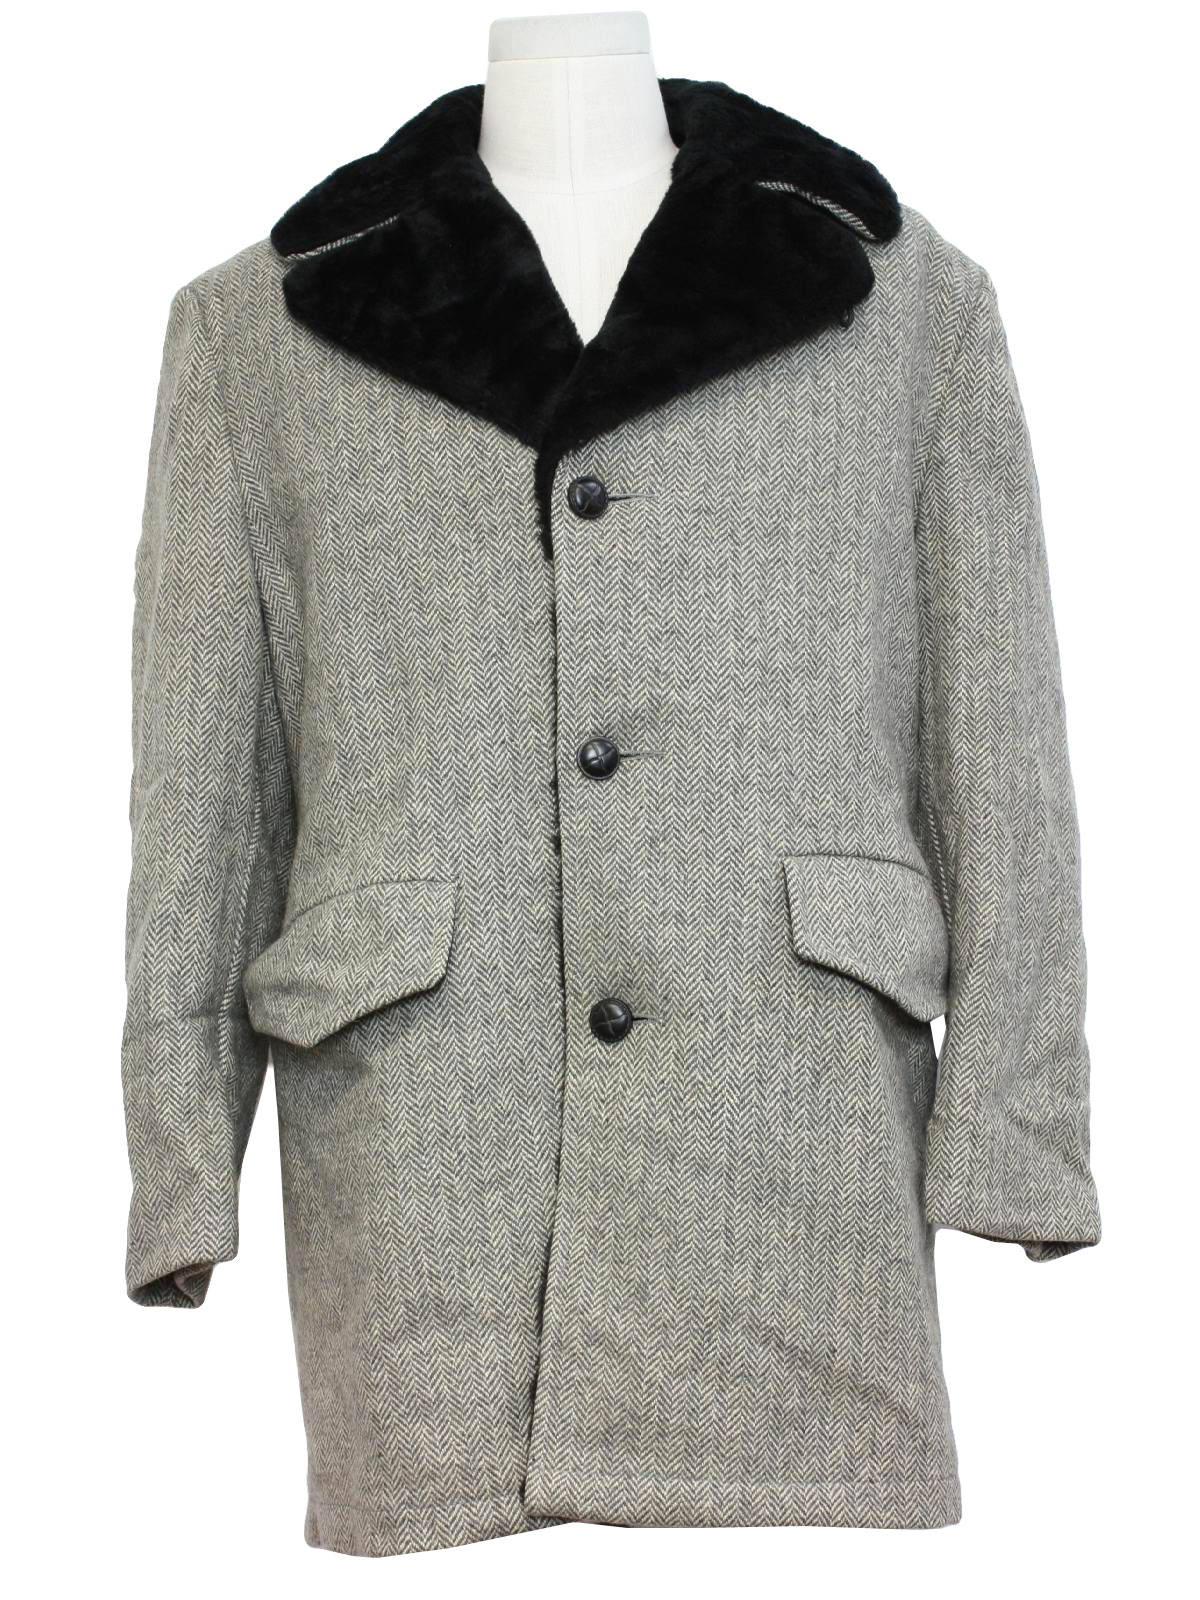 Sixties Vintage Jacket: 60s -Shanhouse- Mens grey and off white